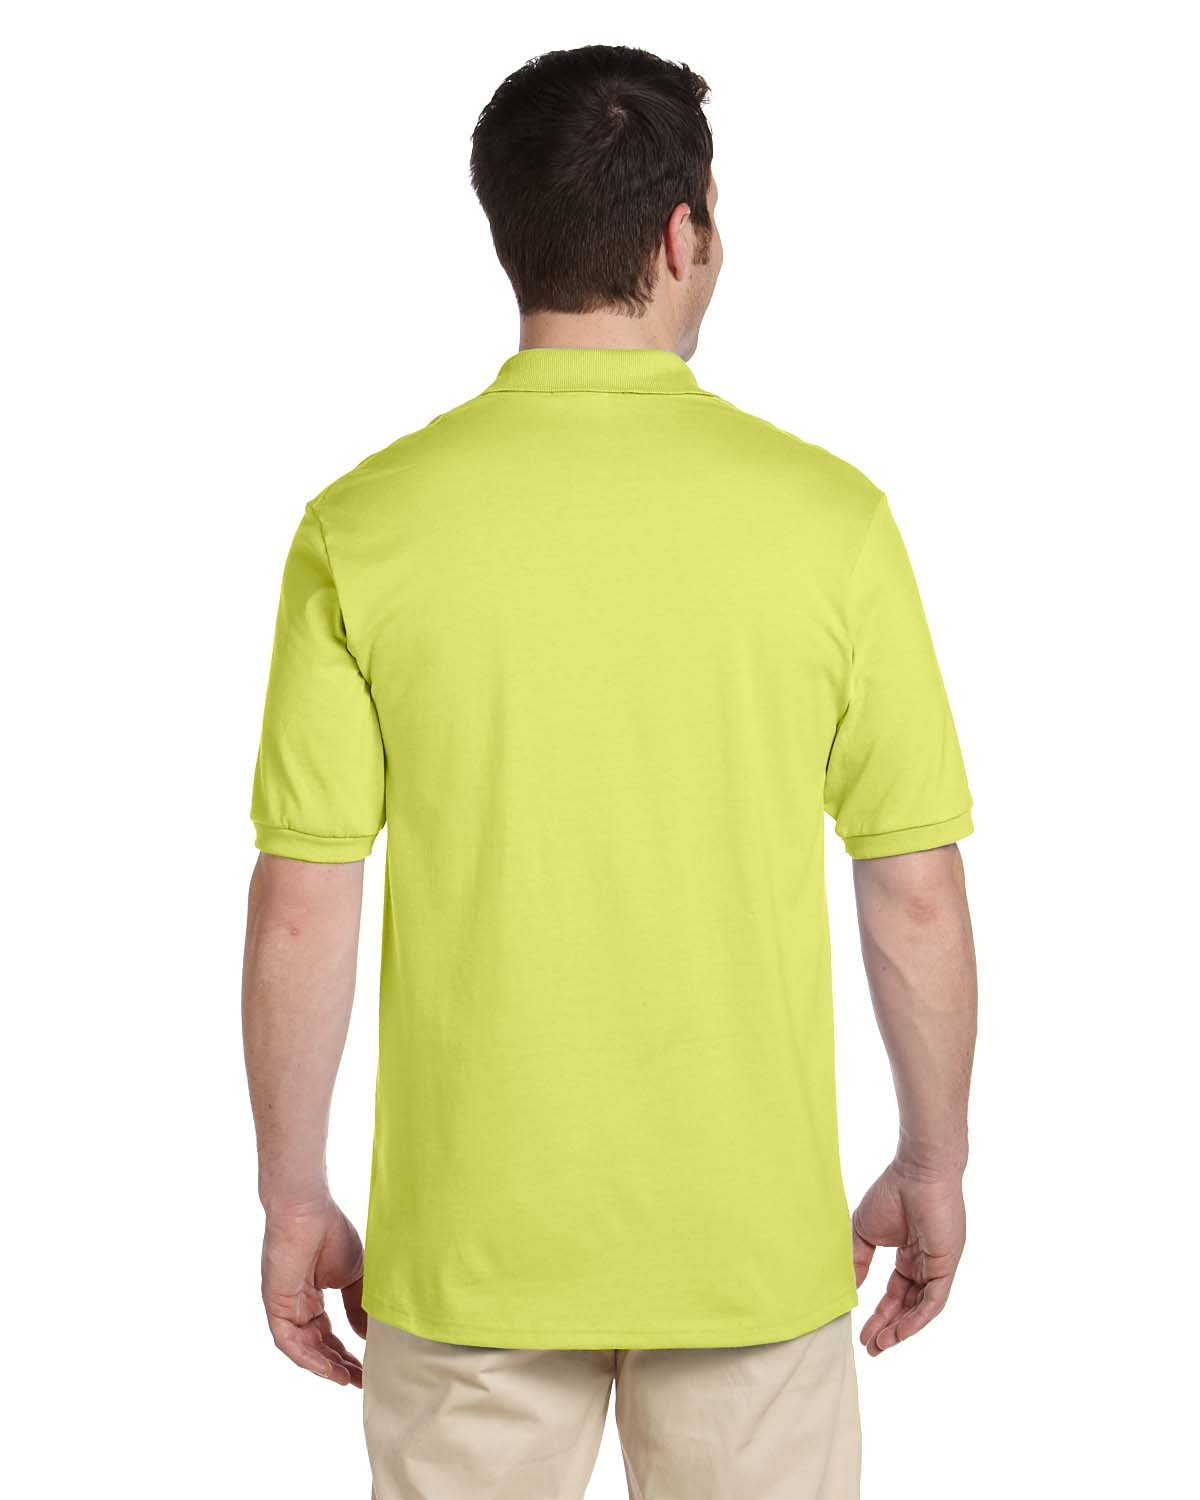 437 Jerzees SAFETY GREEN